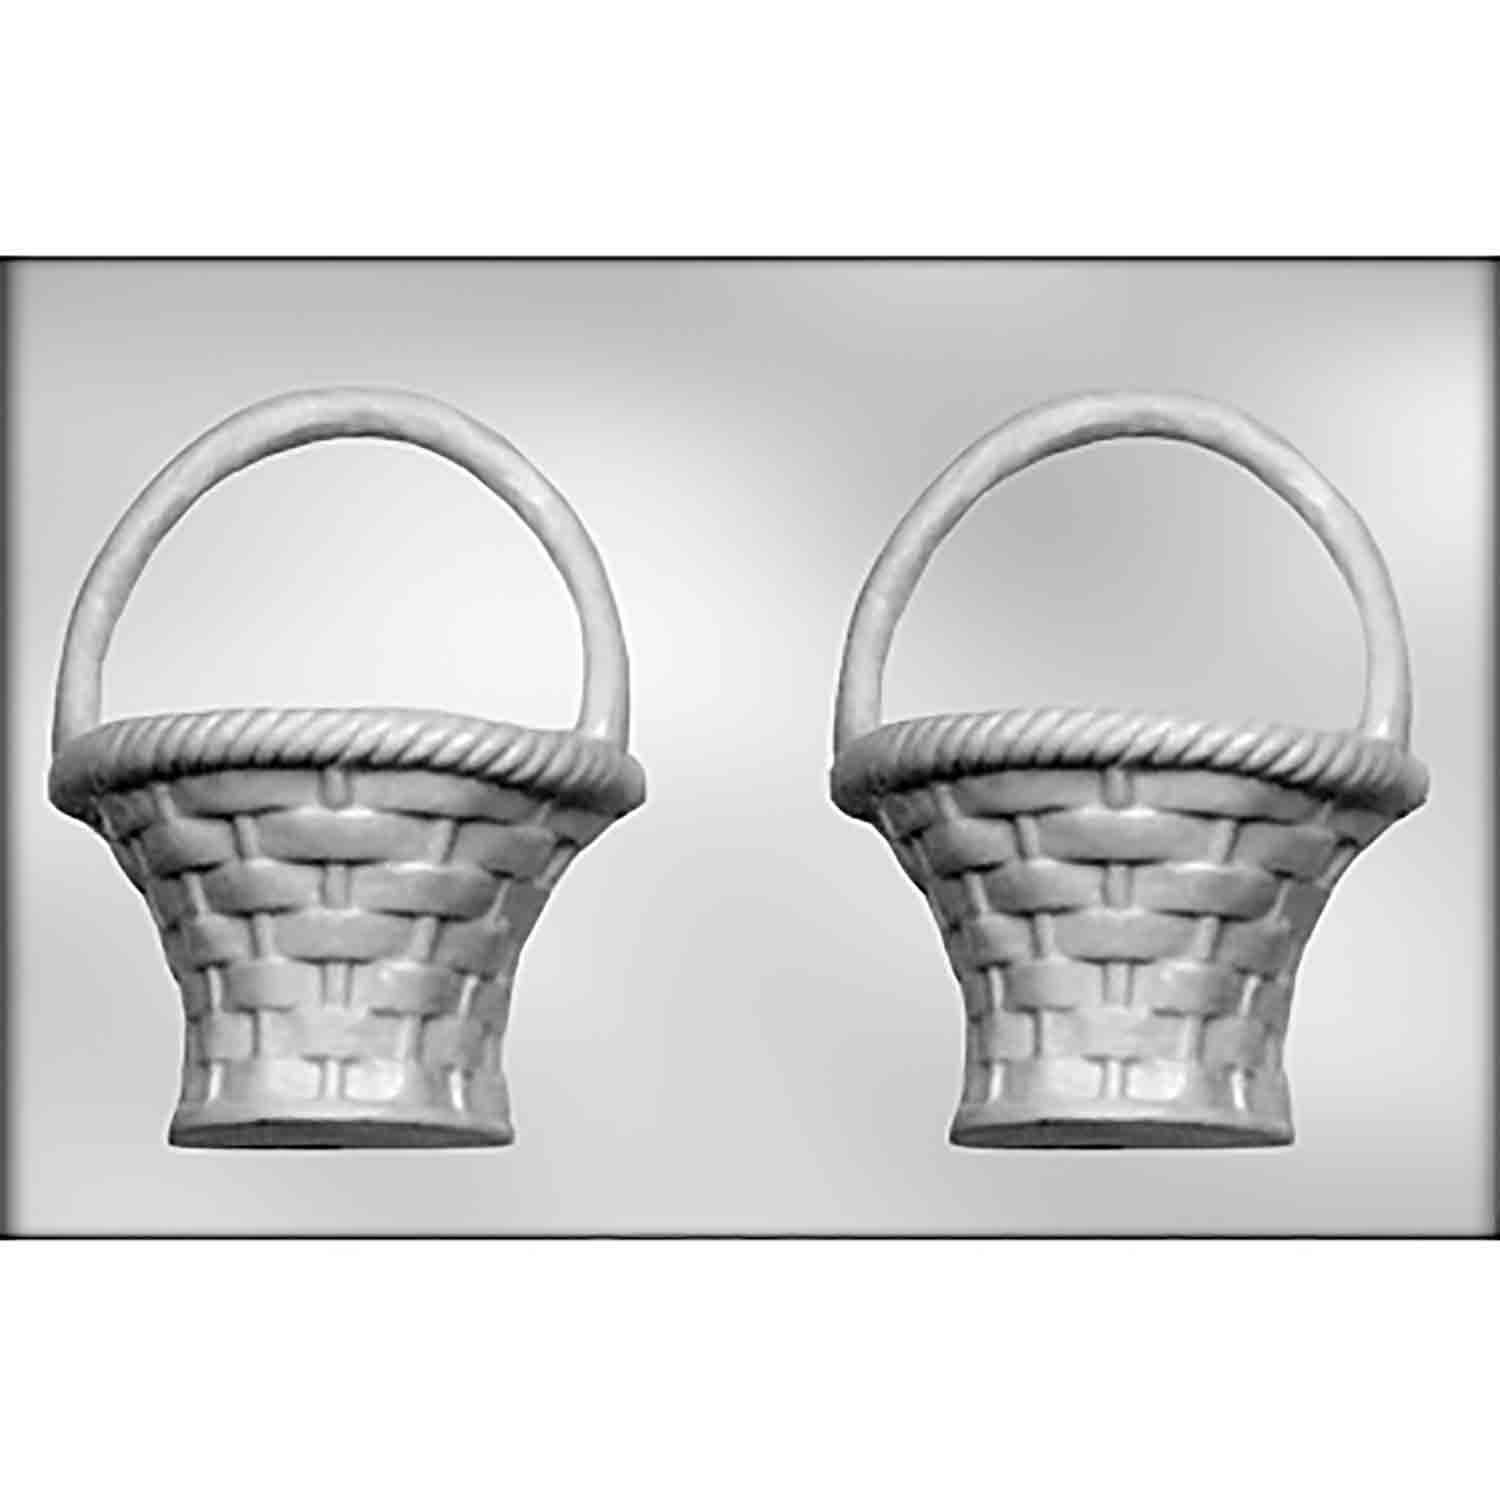 3D Large Basket with Handle Chocolate Candy Mold